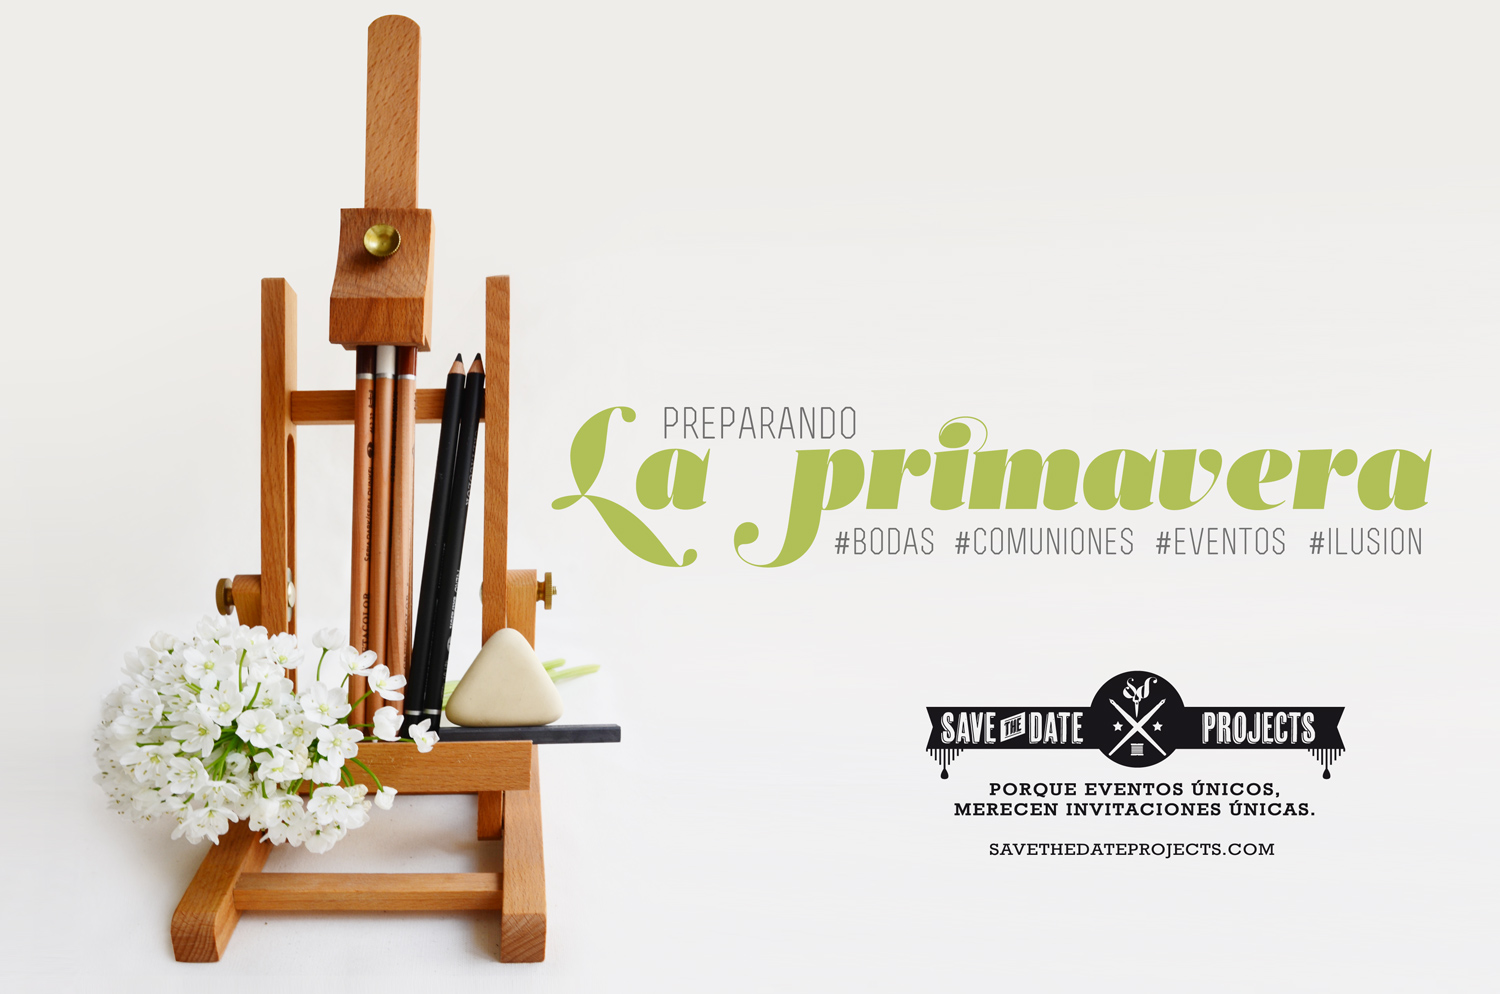 Save the date projects y la primavera